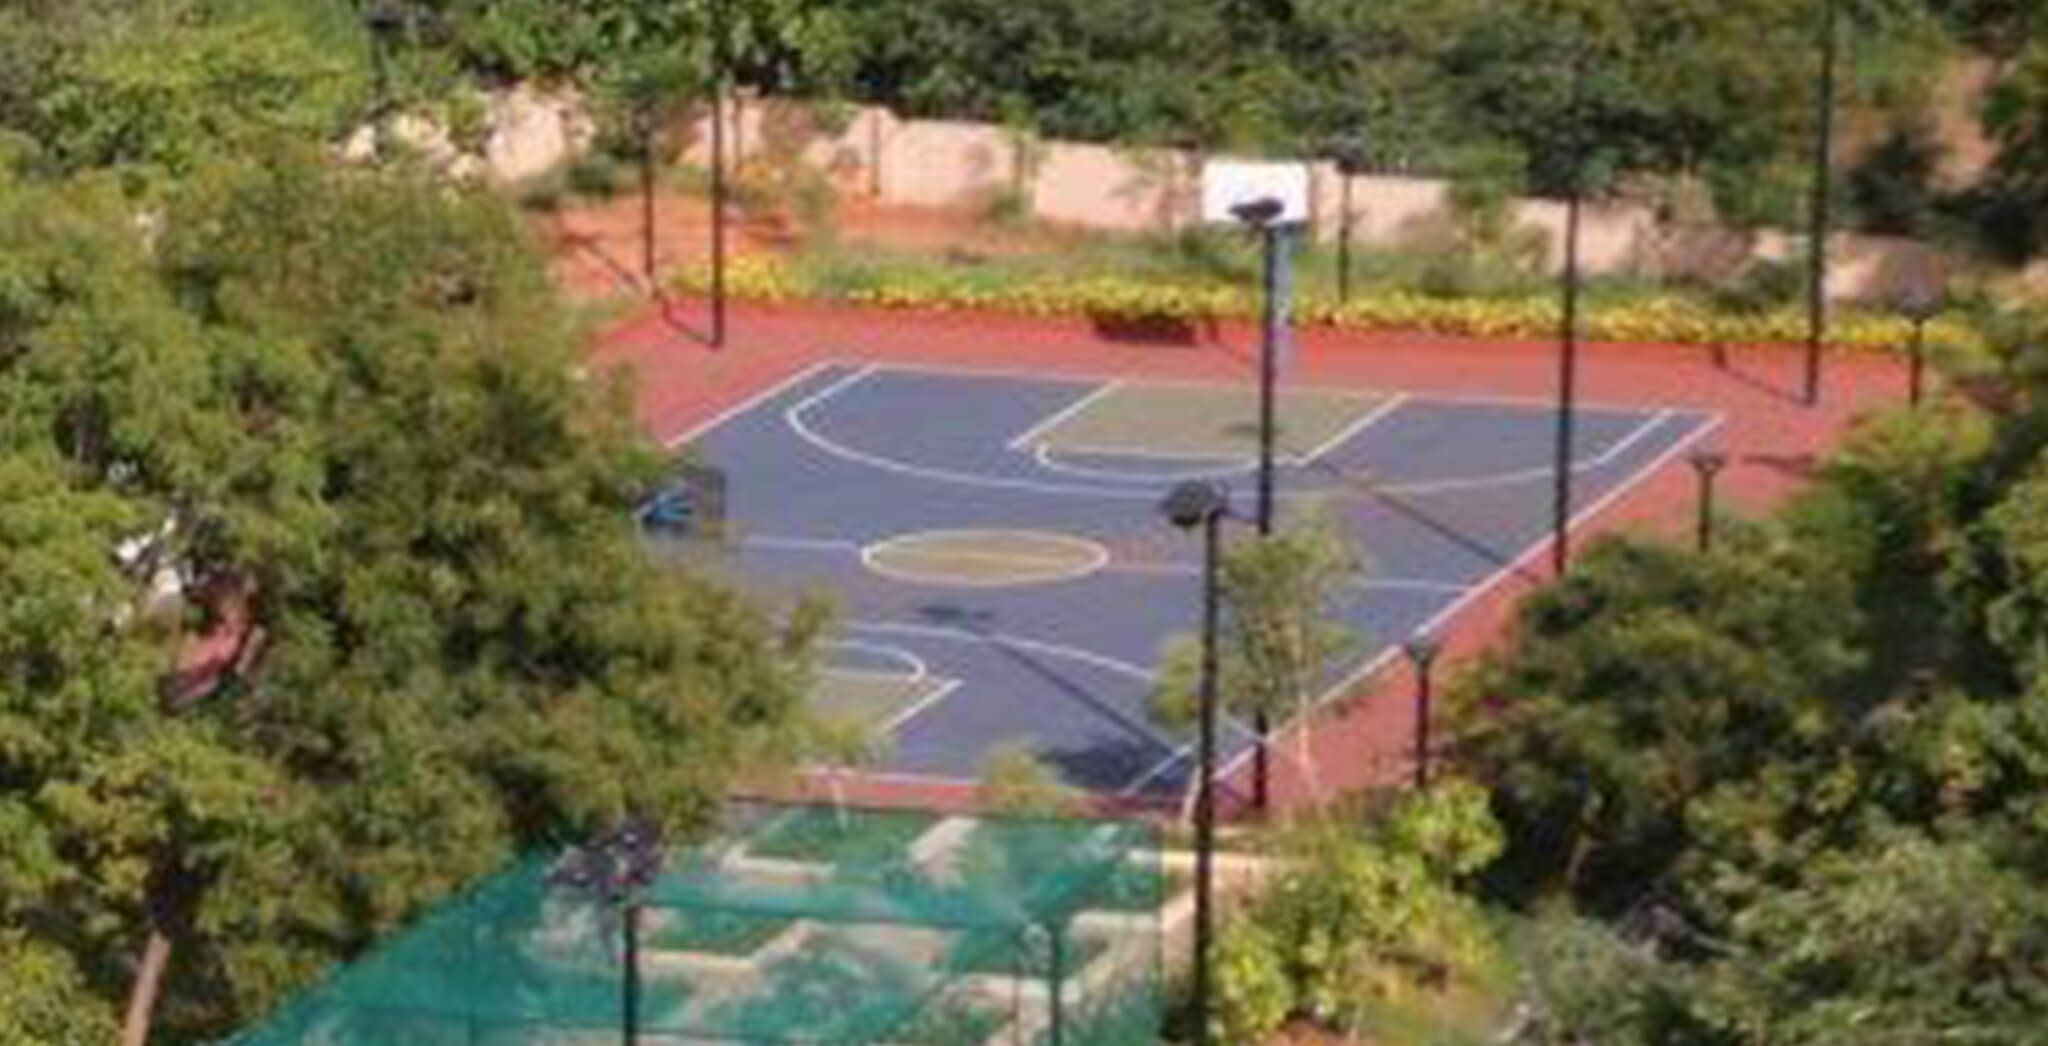 Sep 2017 - Basket Ball court